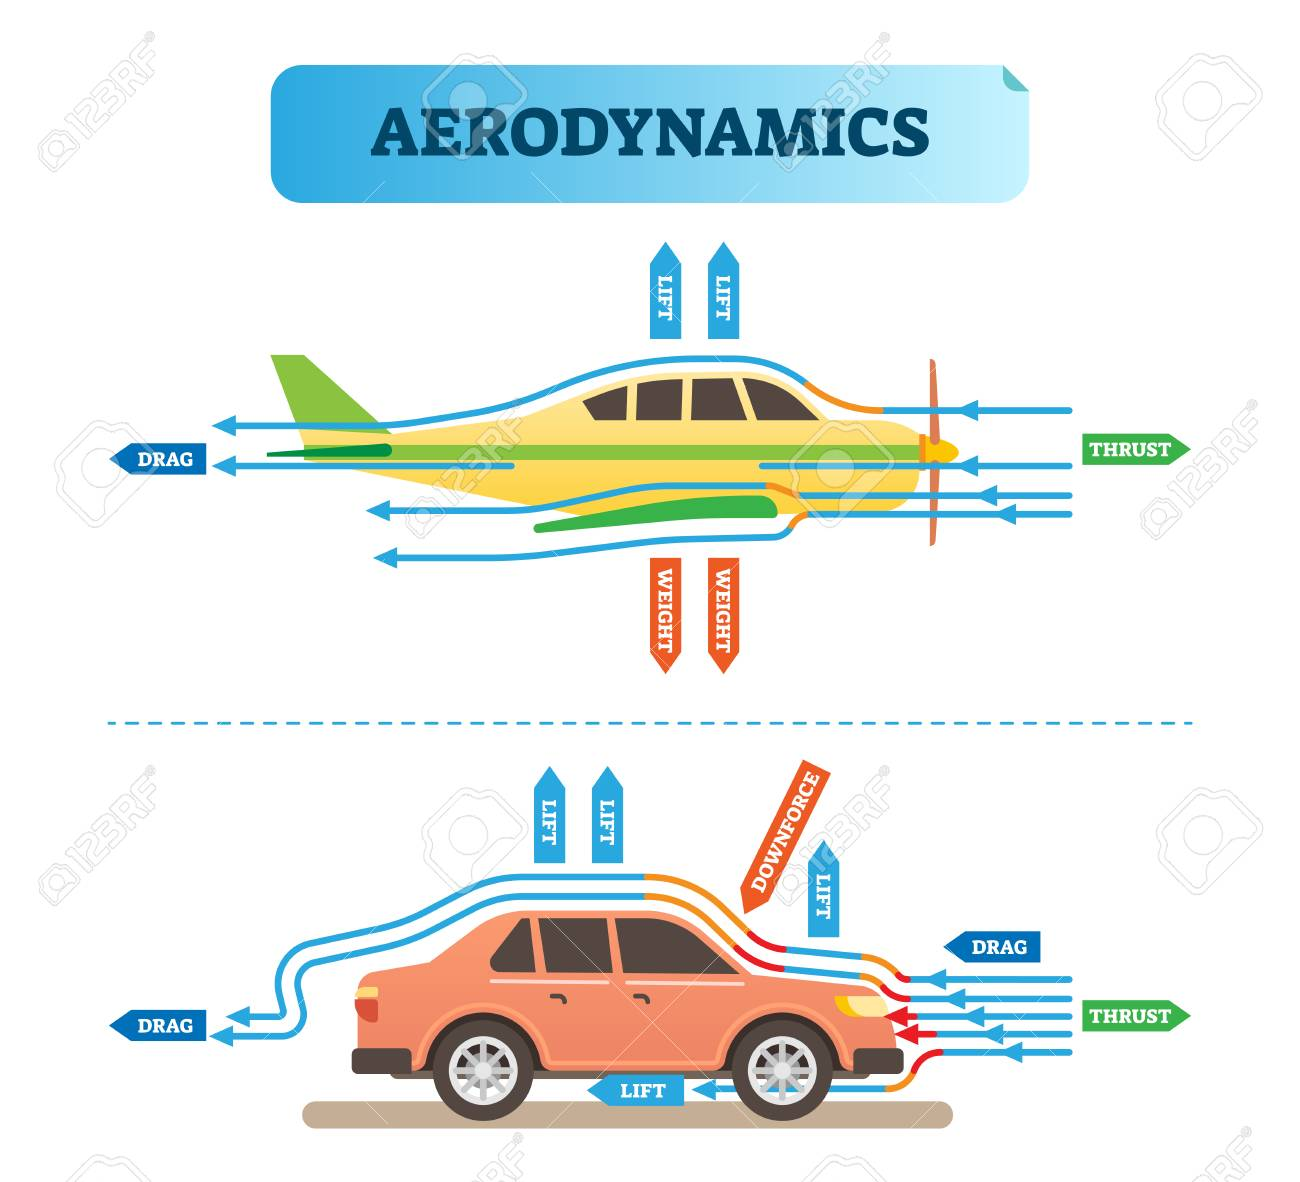 Aerodynamics Air Flow Engineering Vector Illustration Diagram Of Wind With Airplane And Car Physics Force Resistance